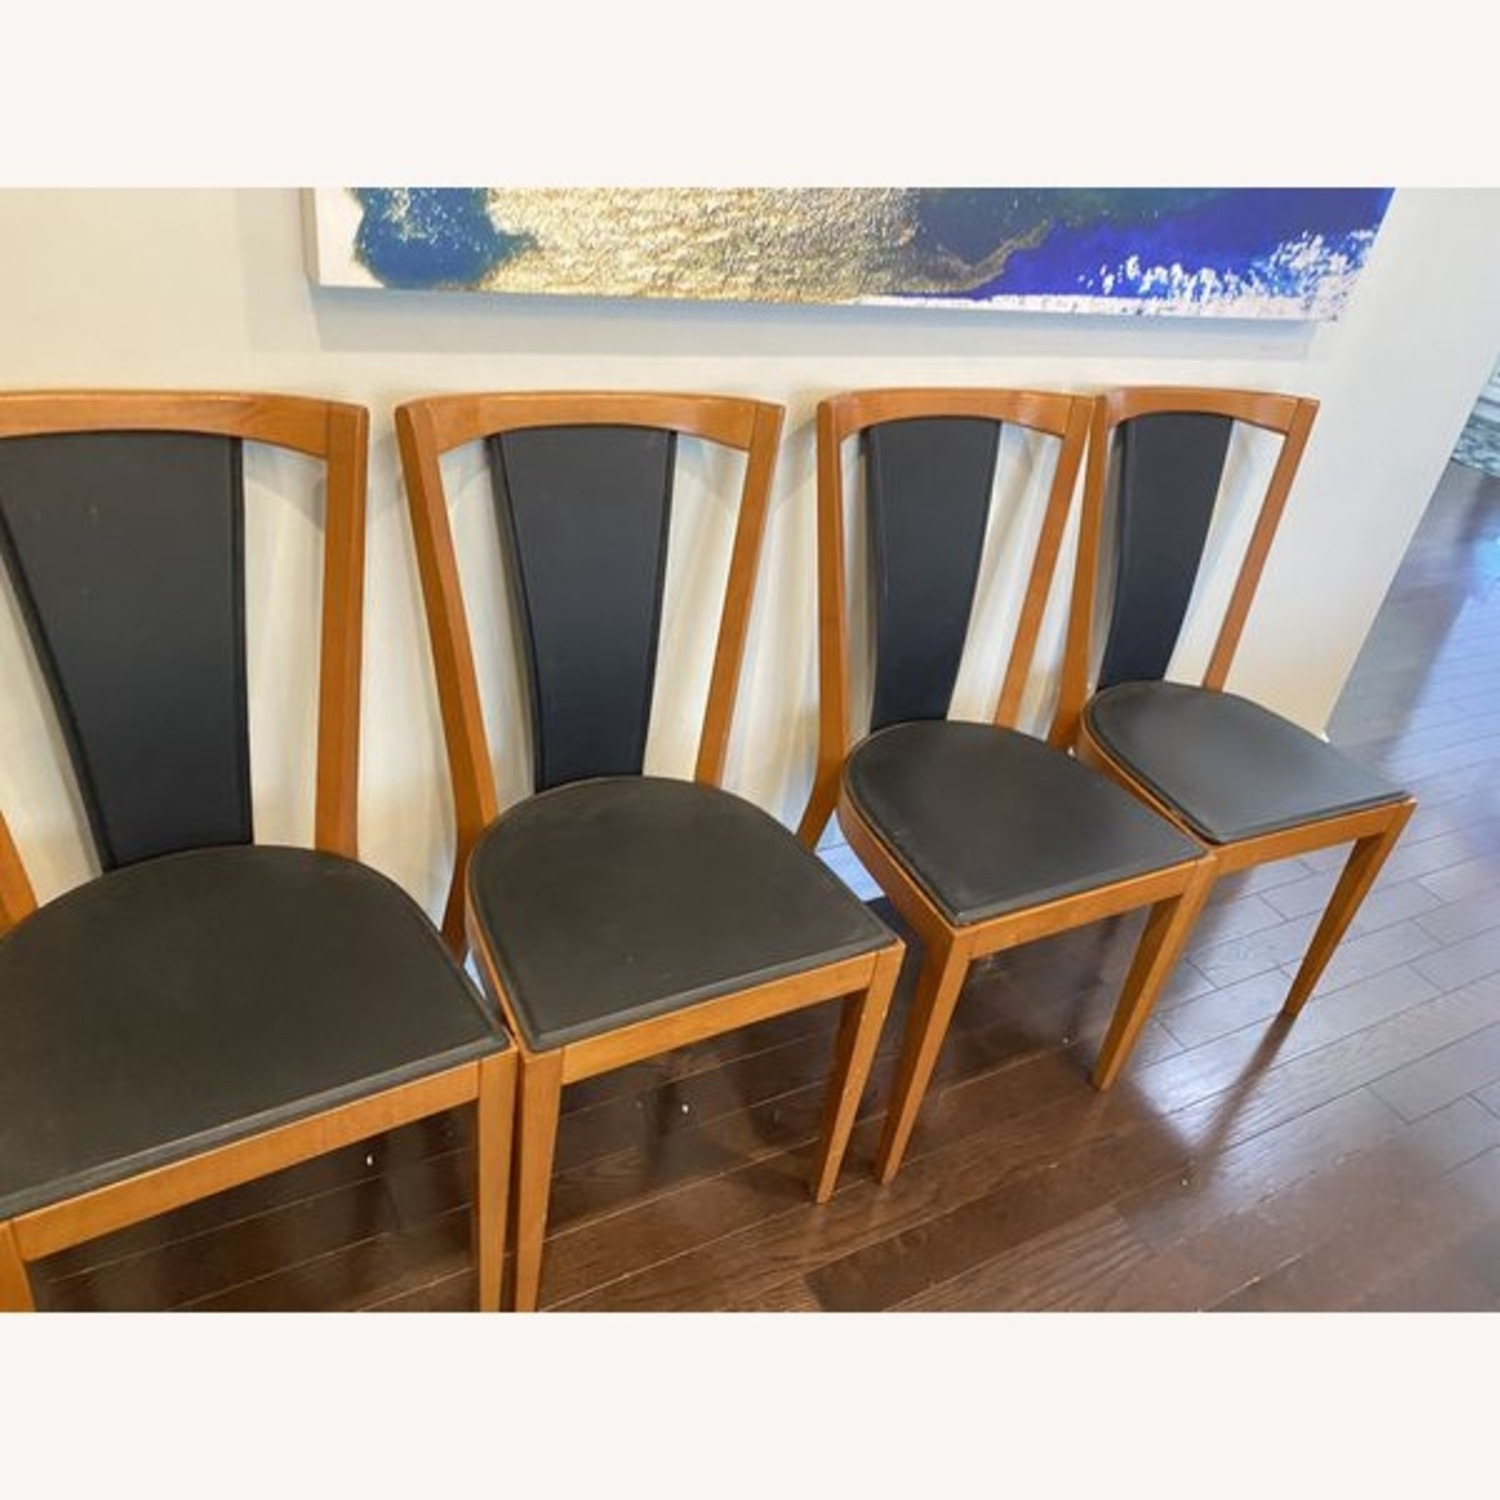 Set of Black Leather Board Wooden Dining Chairs - image-1